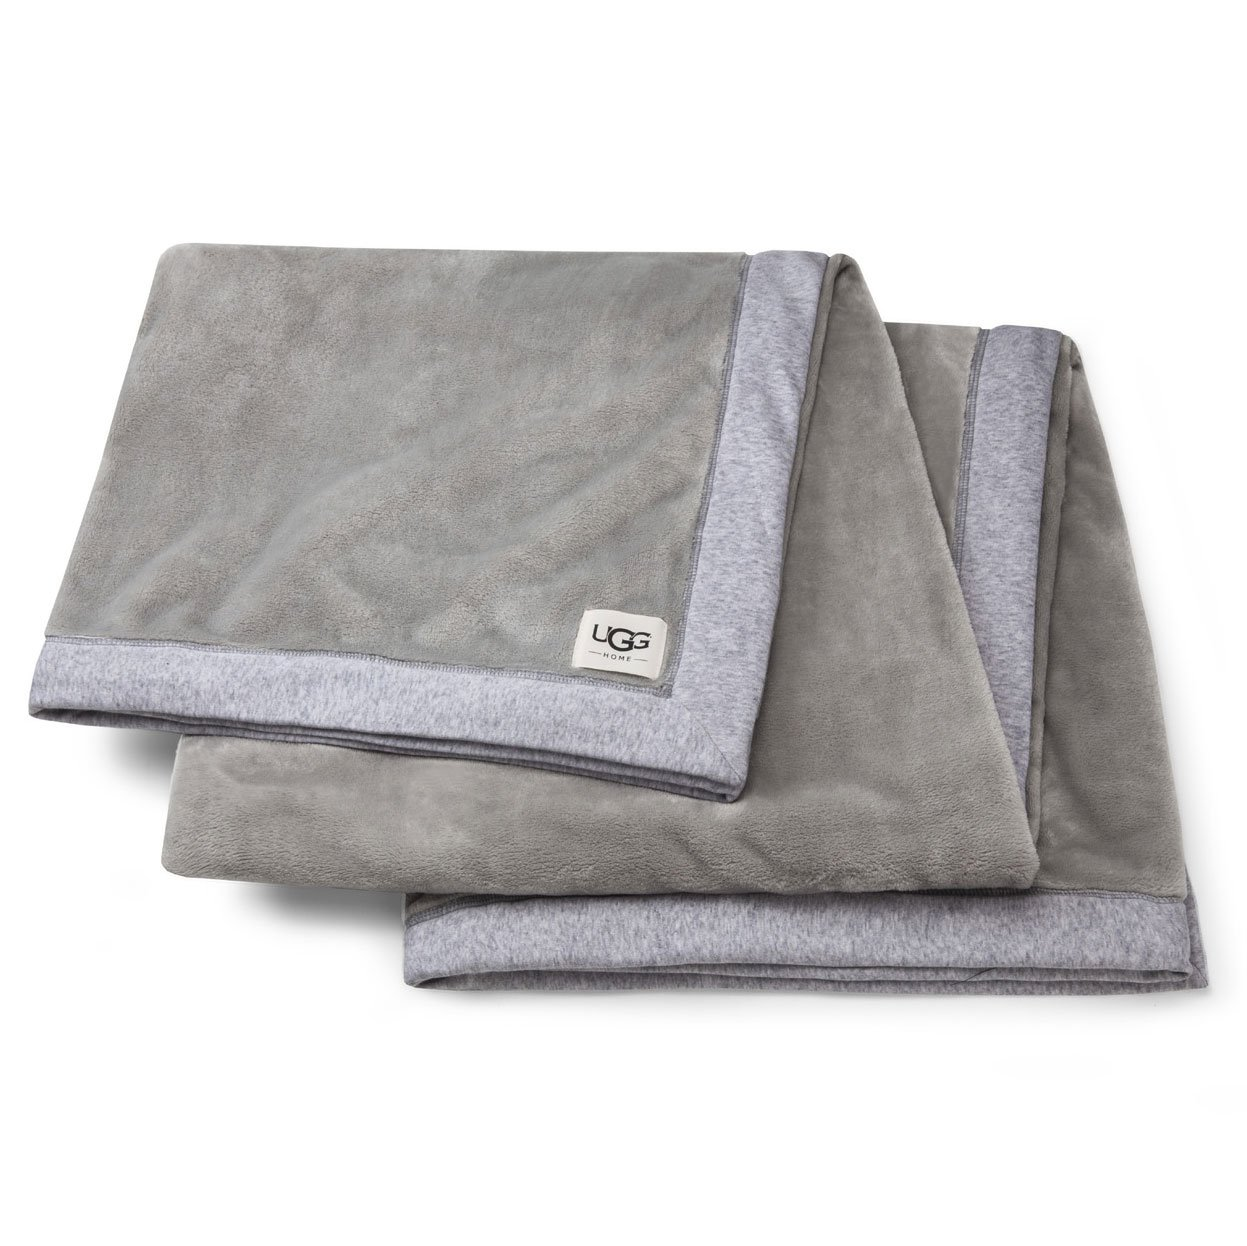 duffield guys » lowest price ugg® duffield throw by housewarming gifts, buy clothes, footwear and accessories online for men and women online fashion store for trendy clothes.